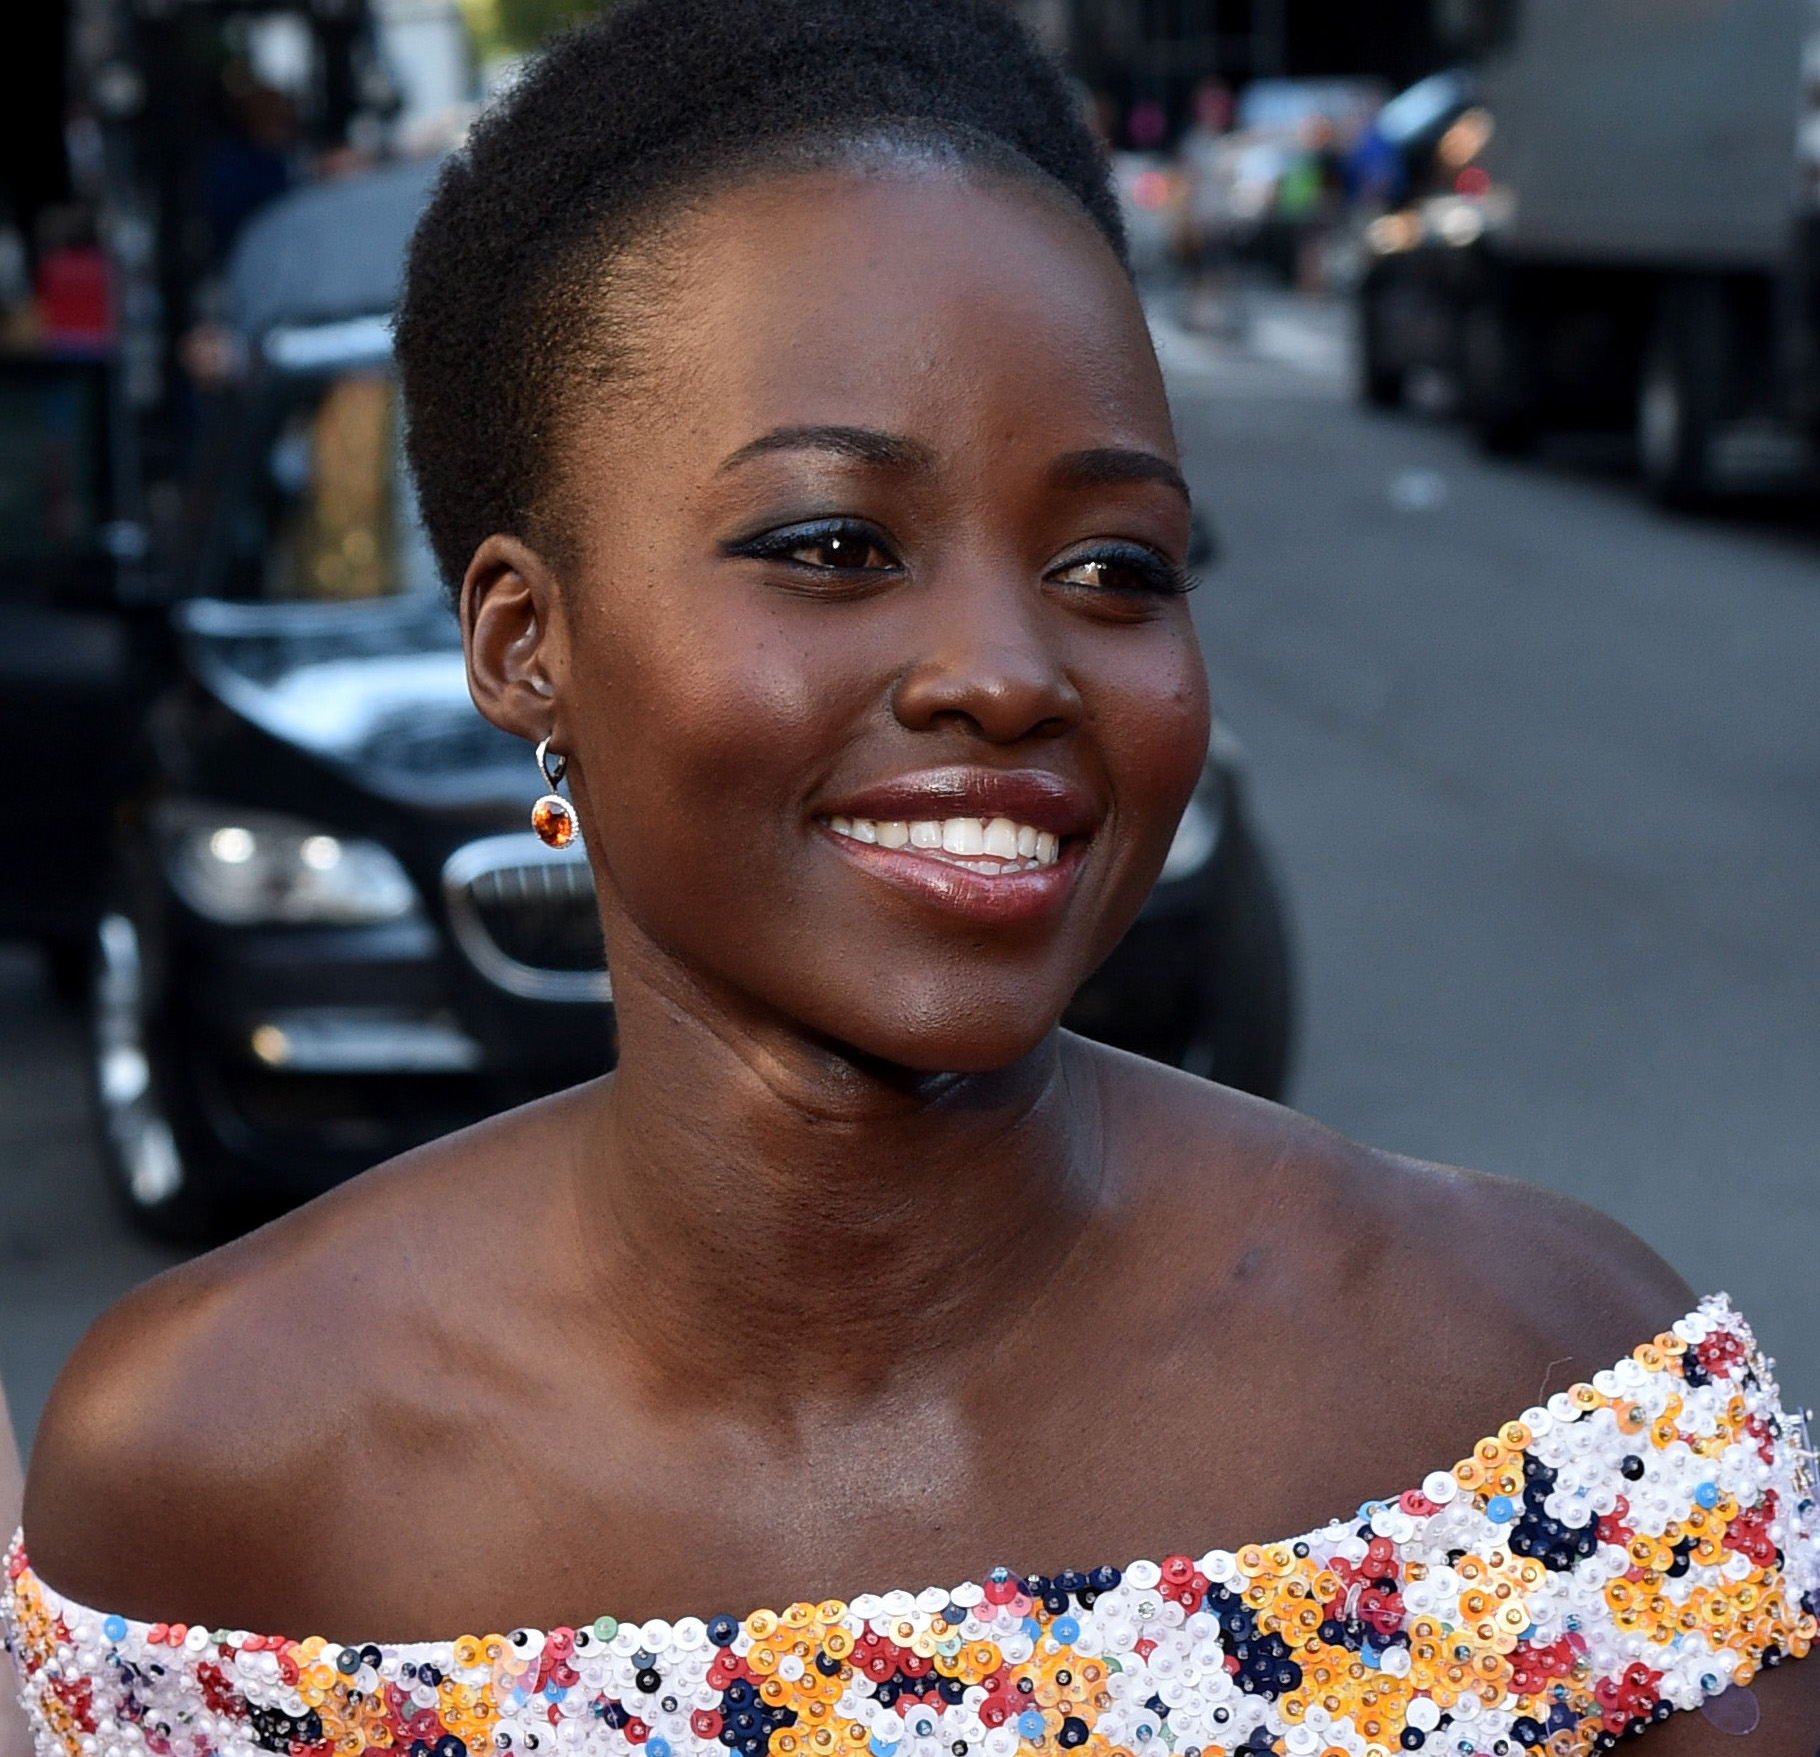 Lupita Nyong'o is literally a Disney princess in this charming #tbt photo